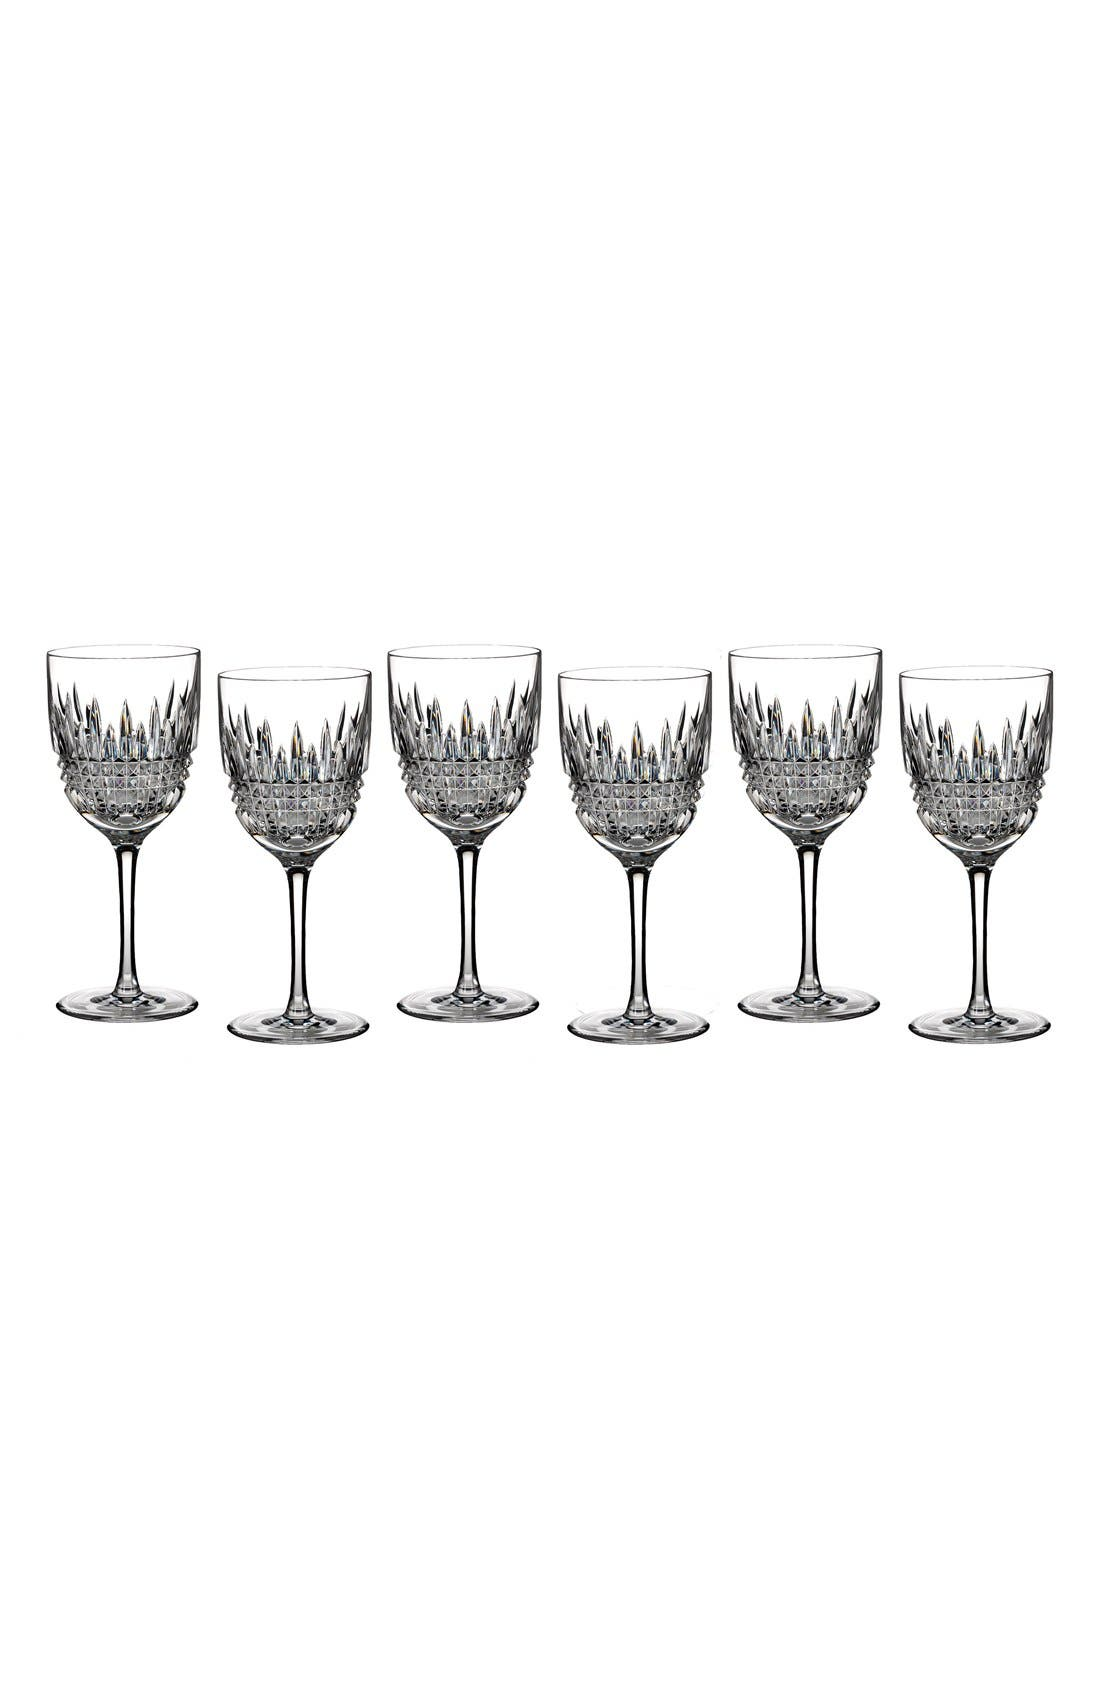 Lismore Diamond Set of 6 Lead Crystal White Wine Glasses,                             Main thumbnail 1, color,